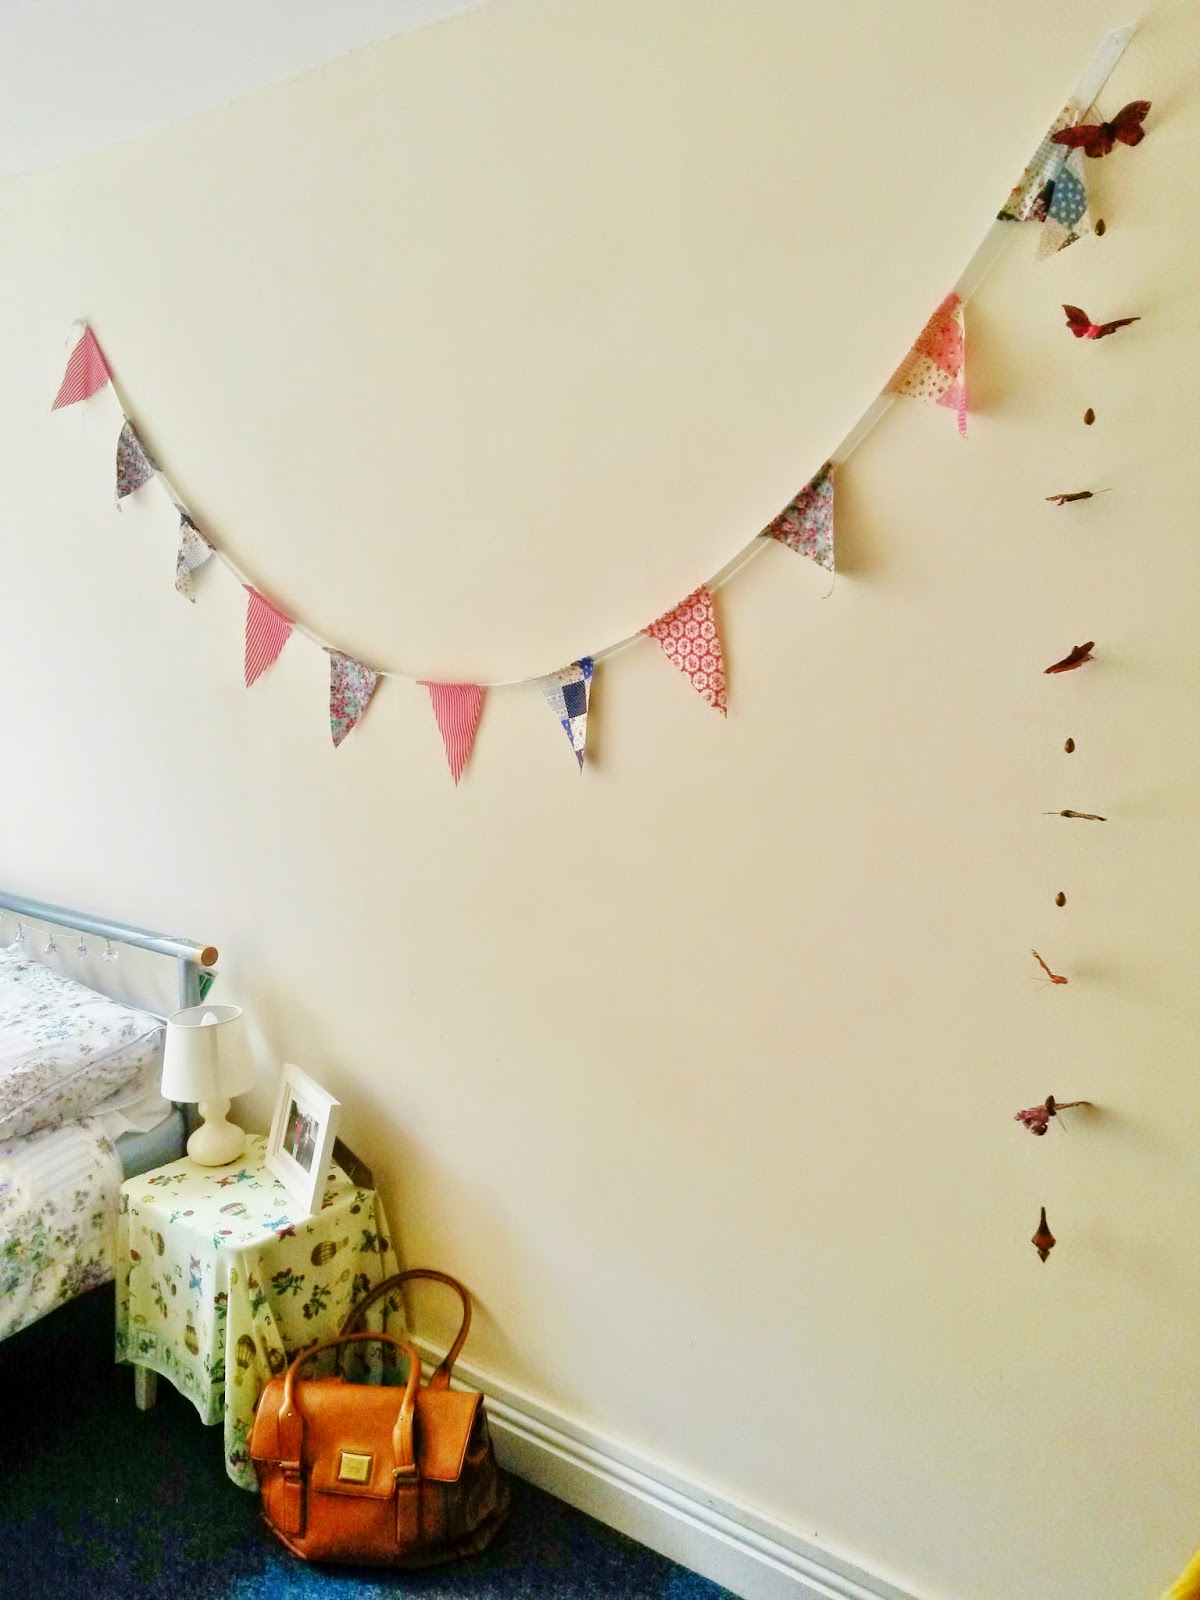 Homemade bunting for taking to university